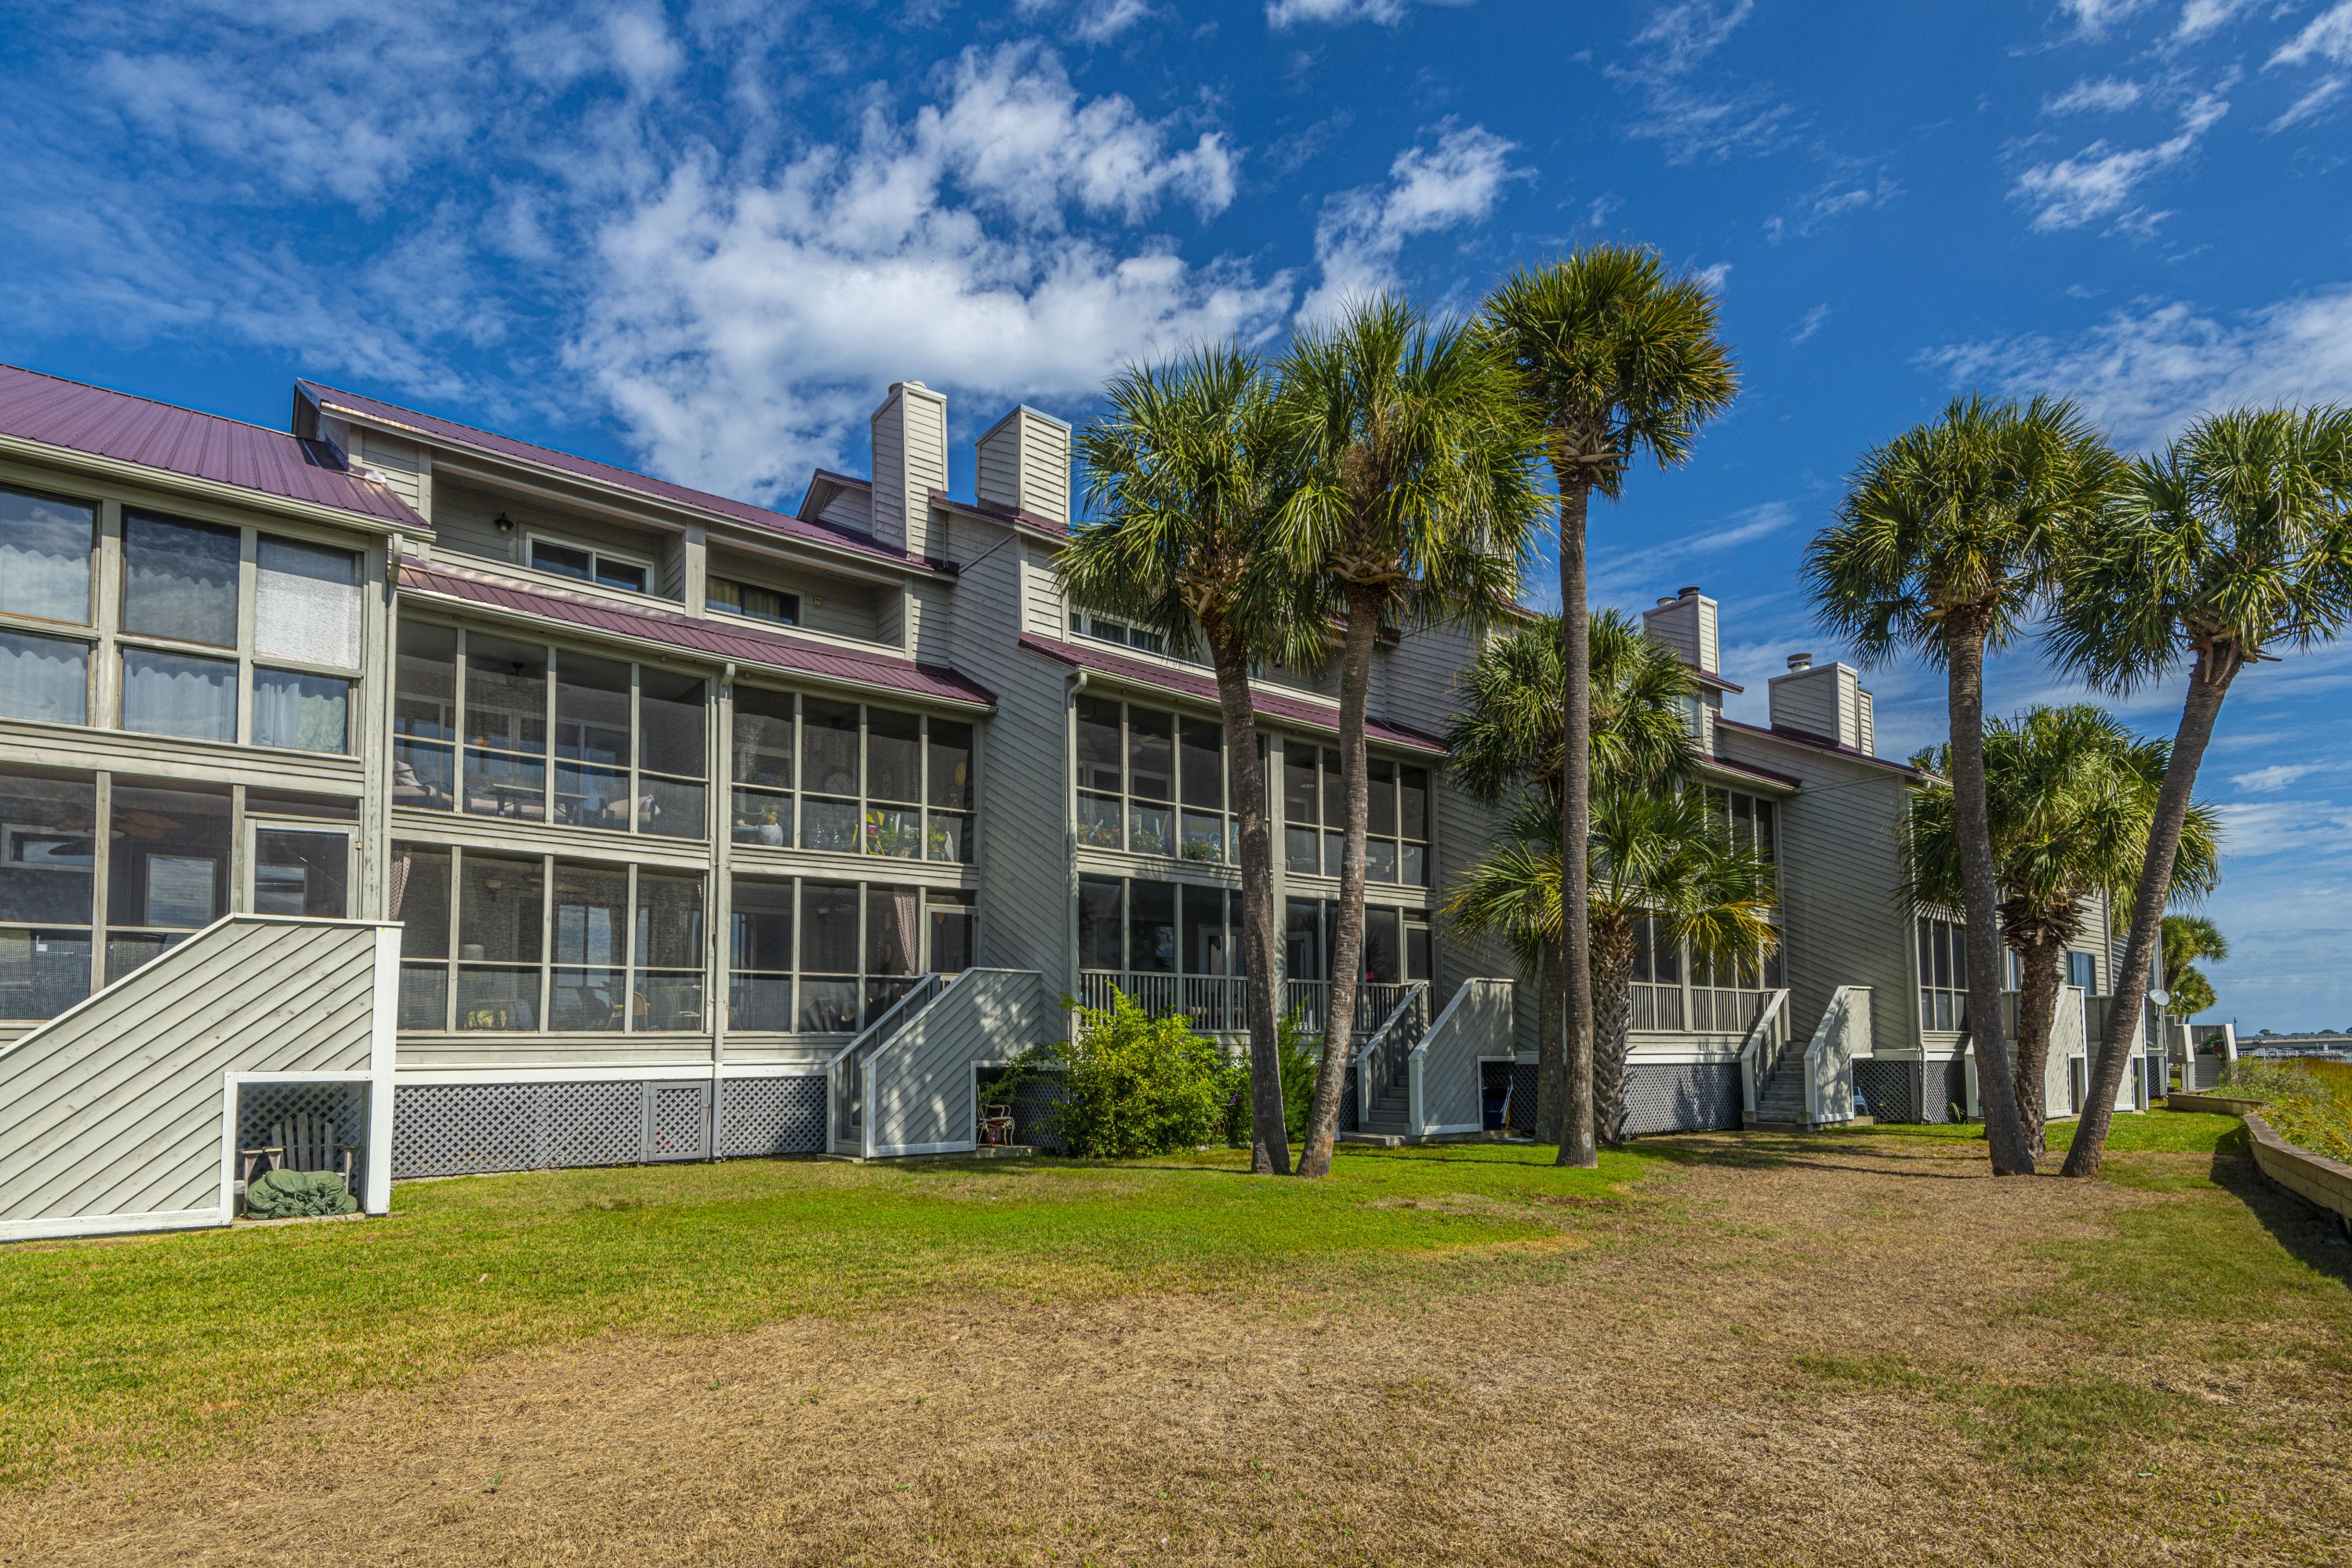 Mariners Cay Homes For Sale - 60 Mariners Cay, Folly Beach, SC - 28